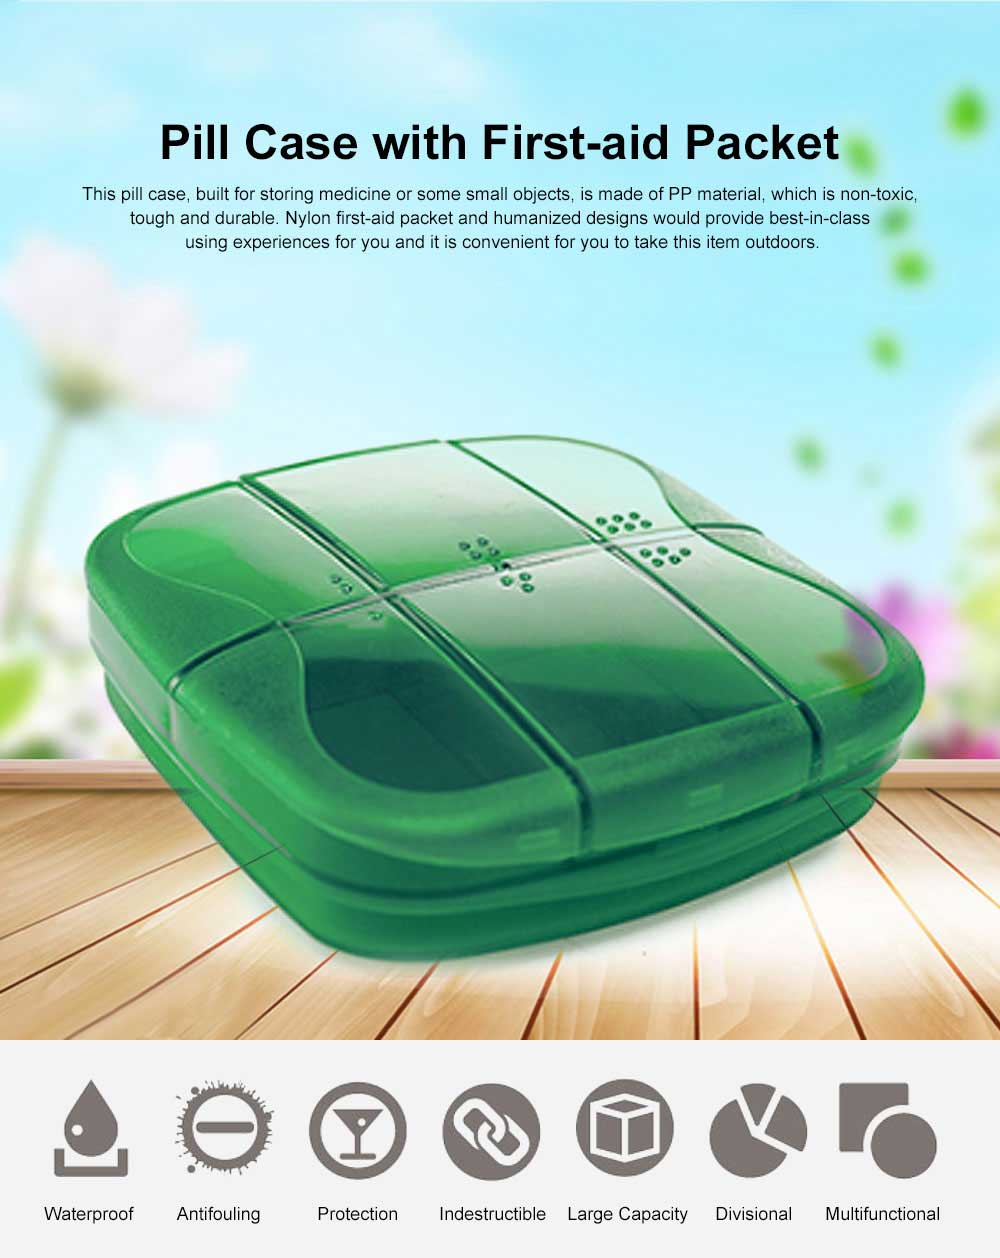 Minimalist Outdoor Moisture-proof Pill Case Box with Nylon First-aid Packet, 6 Separate Compartments Waterproof Medicine Storage Organizer Case 0